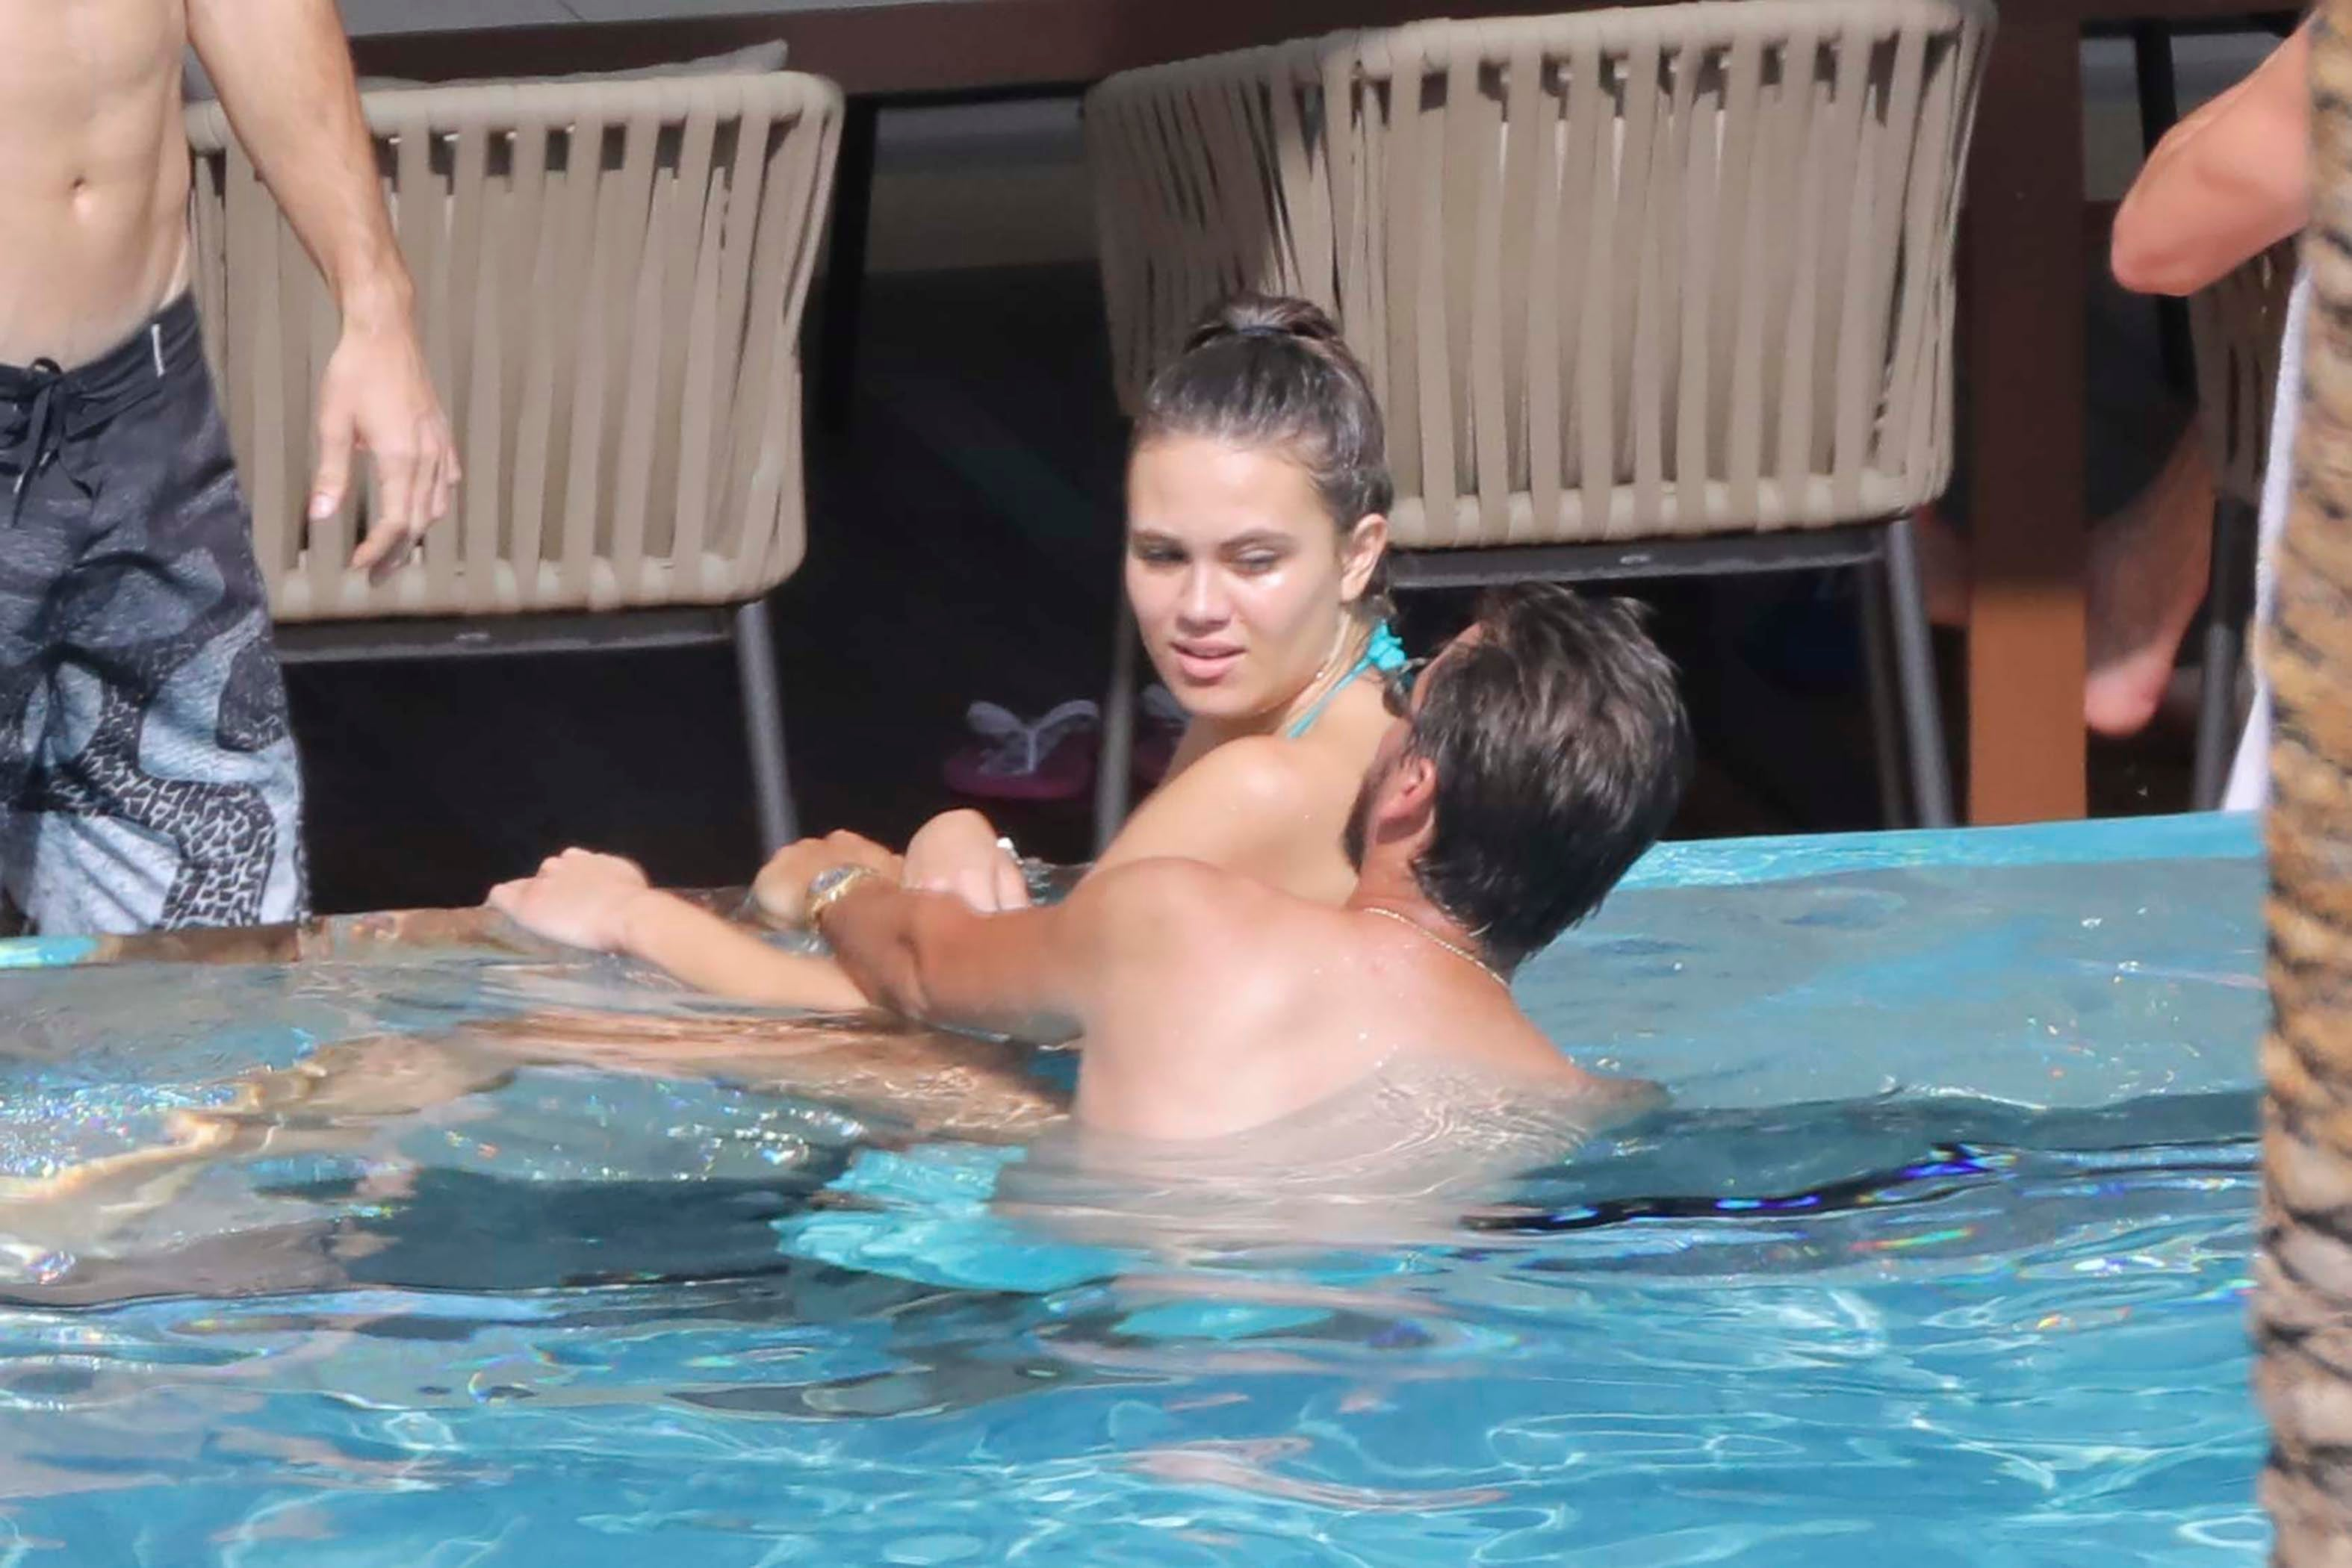 Online Dating Sites >> Scott Disick Frolics With 2 More Girls After Bella Thorne and Ex Chloe Bartoli - See the Pics ...